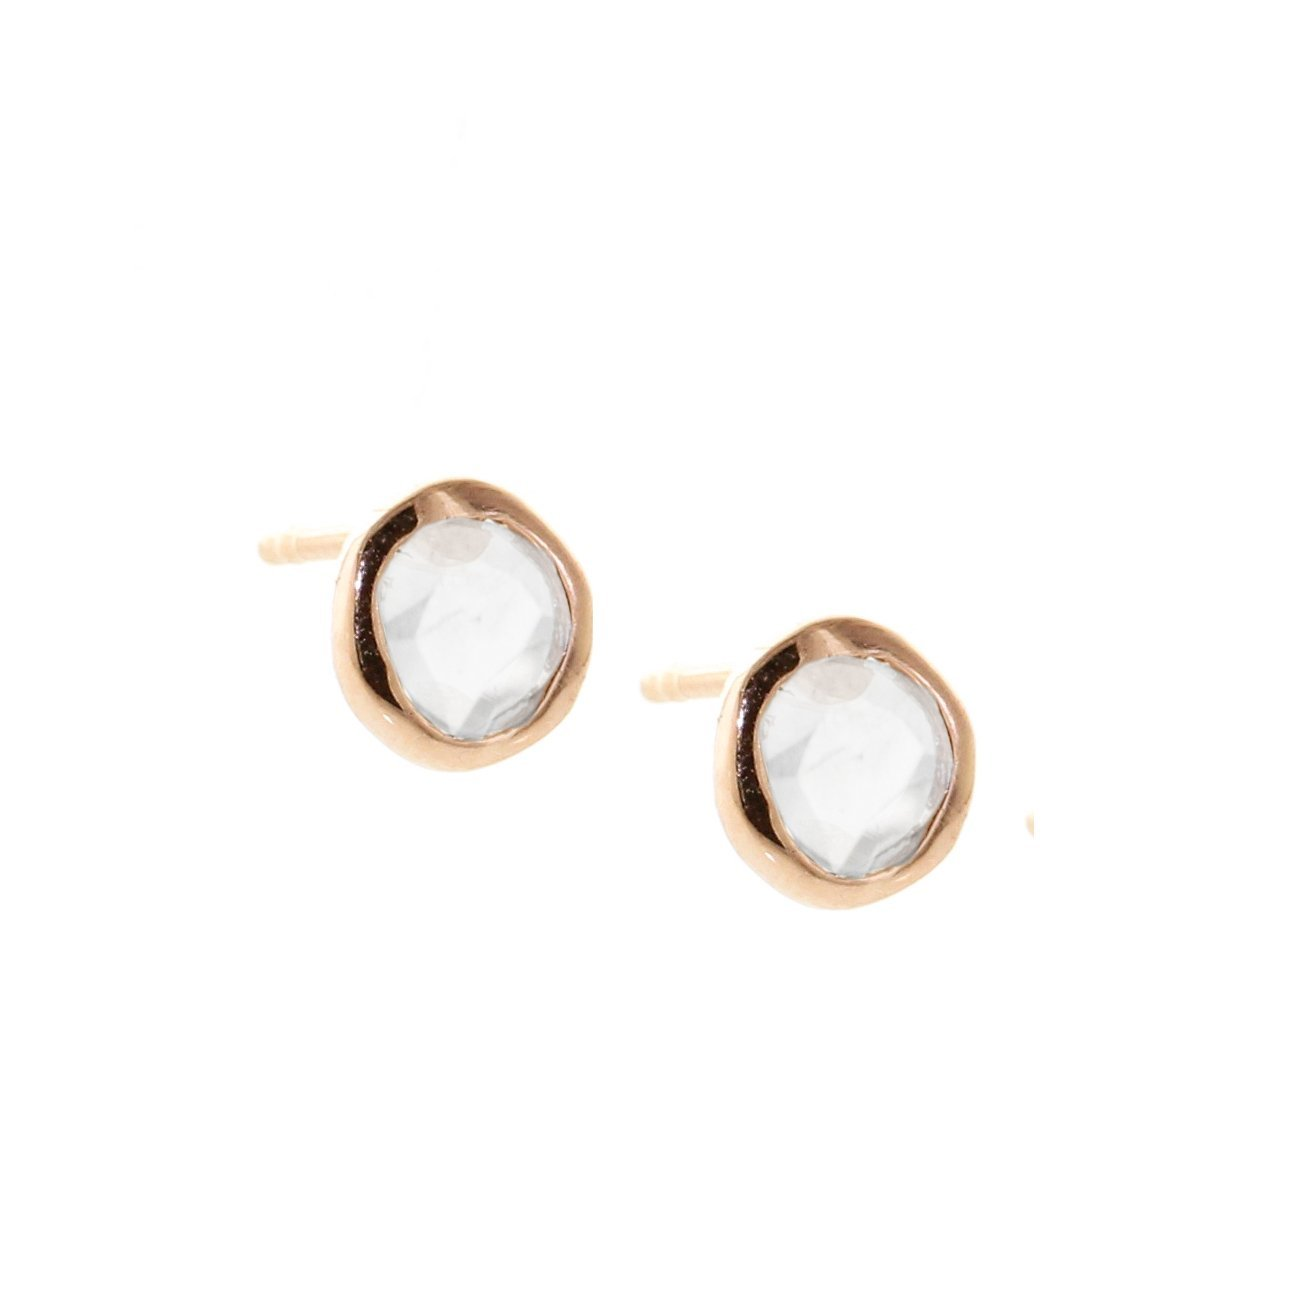 True Sliced Diamond Solitaire Studs Rose Gold - SO PRETTY CARA COTTER